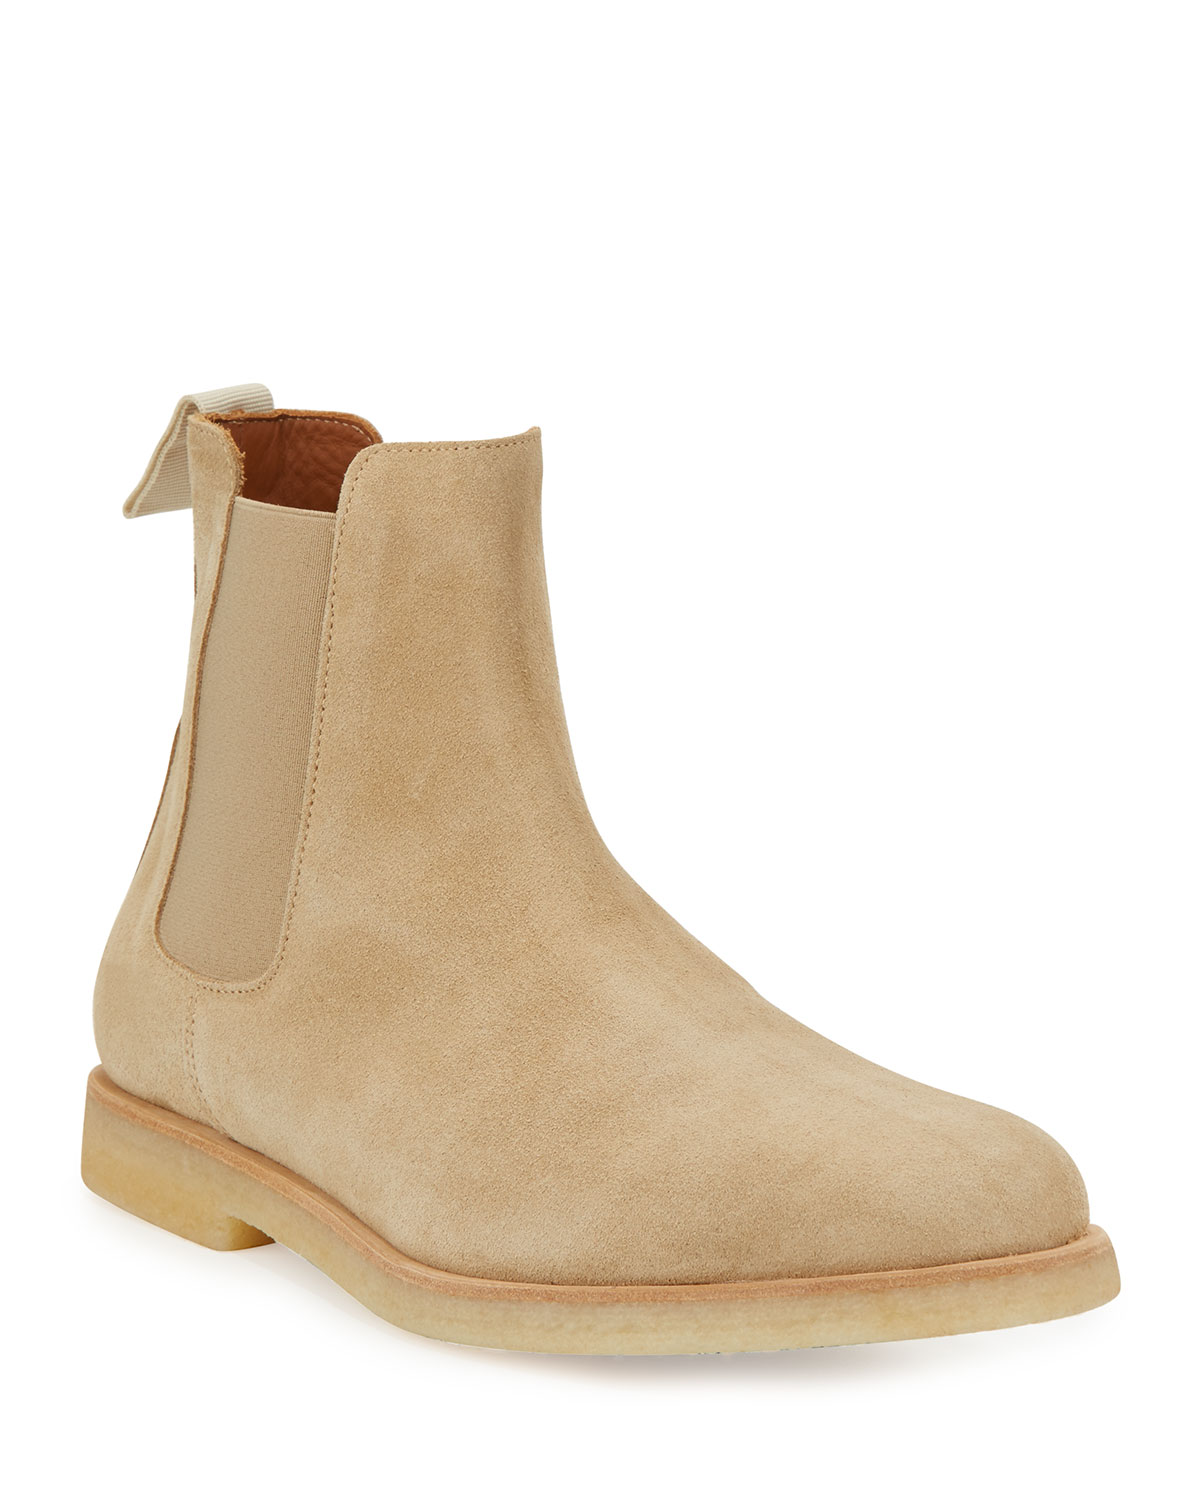 7977ead8bb Common Projects Men's Calf Suede Chelsea Boot, Tan | Neiman Marcus